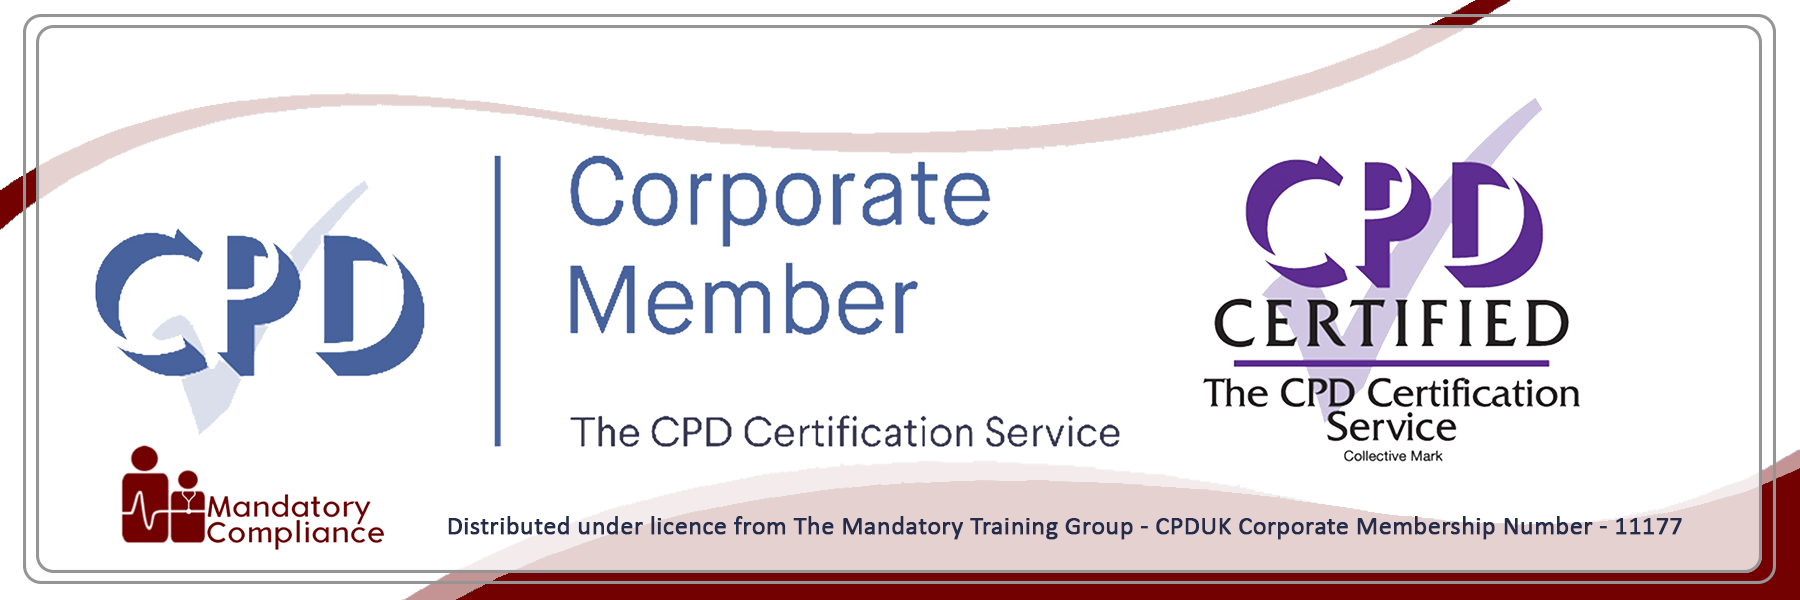 Online Alcohol Awareness - Online-Training-Course-CPD-Accredited-Mandatory-Compliance-UK-